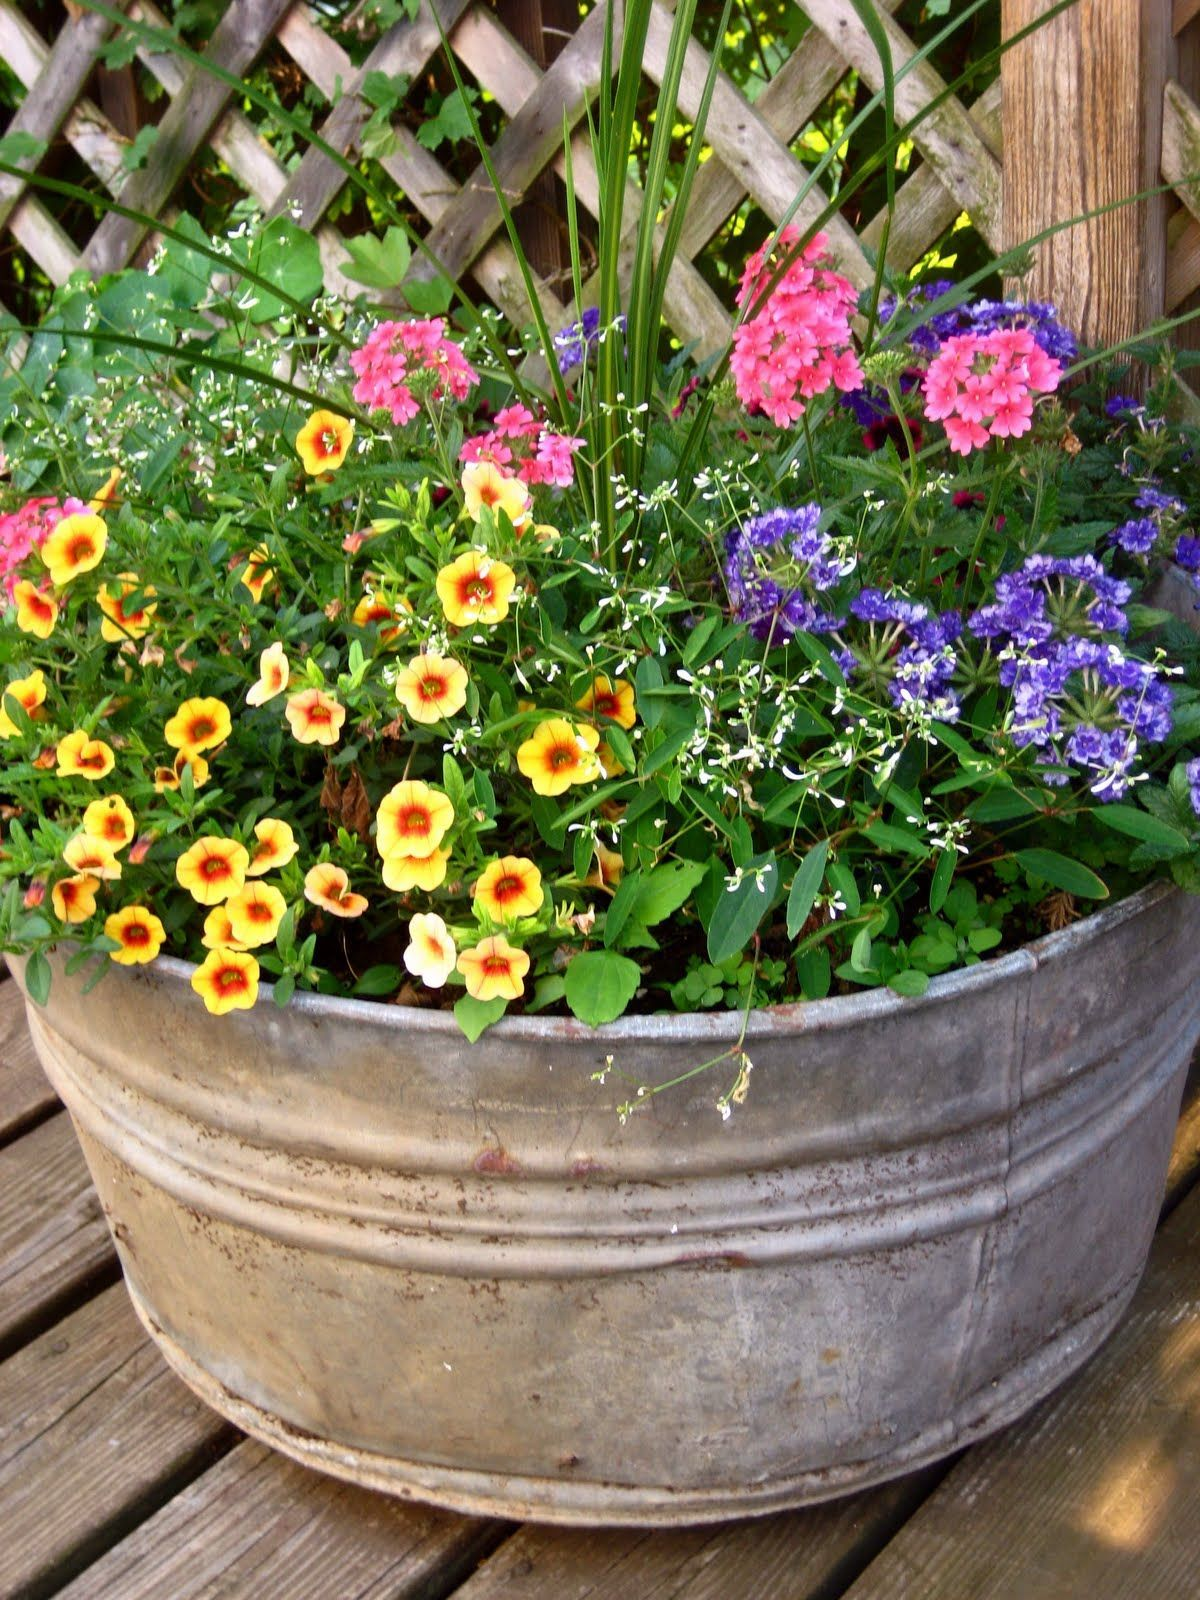 Flowers For Full Sun Heat Pot Contains Four Types Of Heat Tolerant